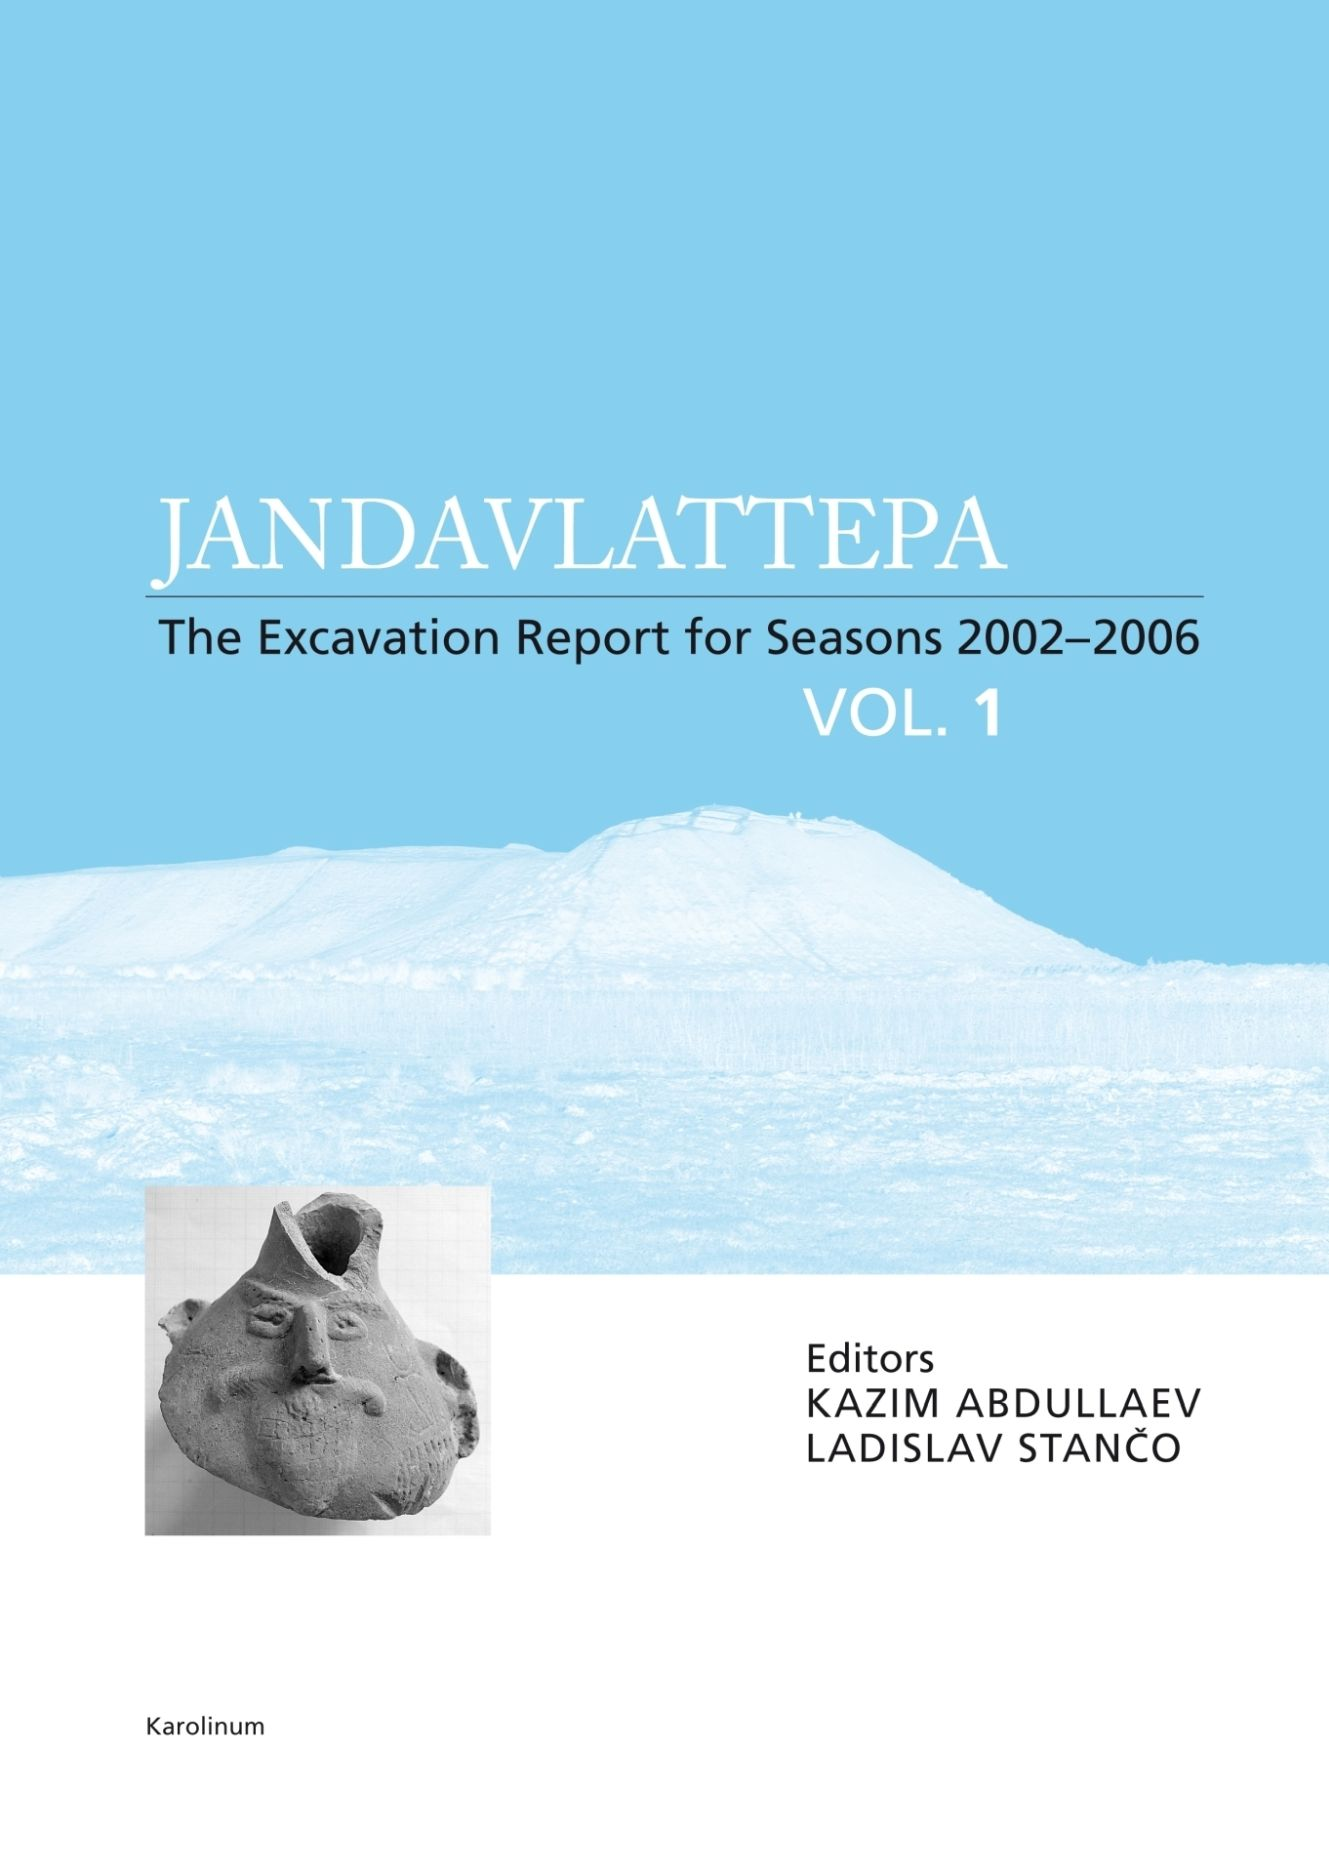 Jandavlattepa, Vol. I: The excavation report for seasons 2002-2006